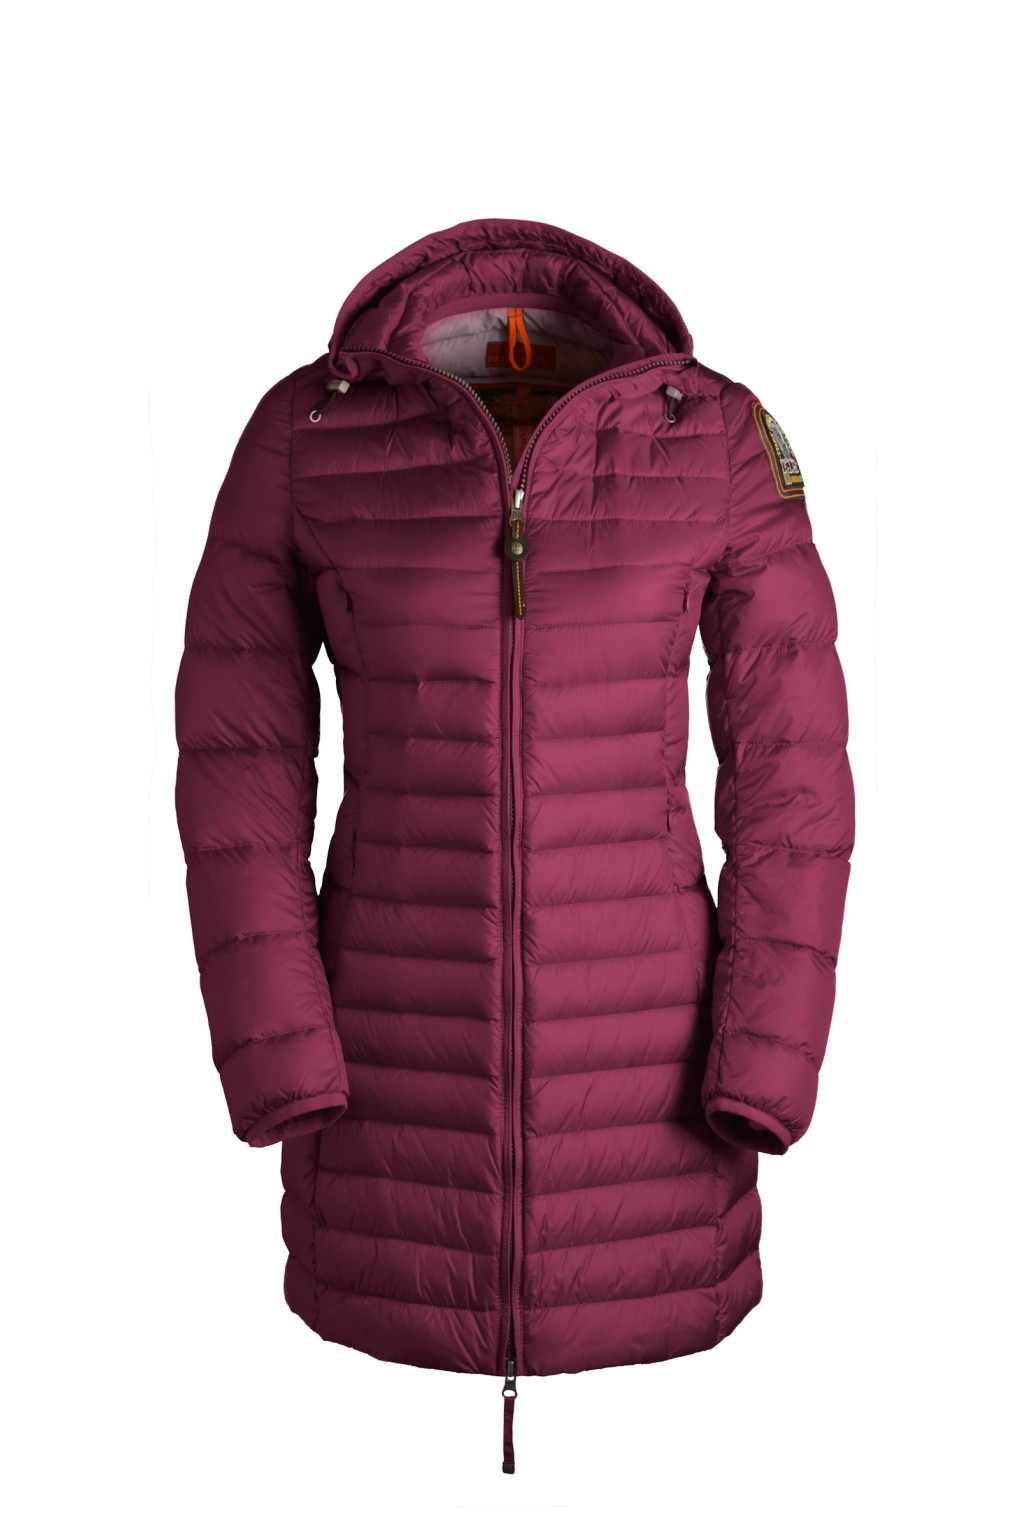 parajumpers IRENE6 woman outerwear Fuchsia